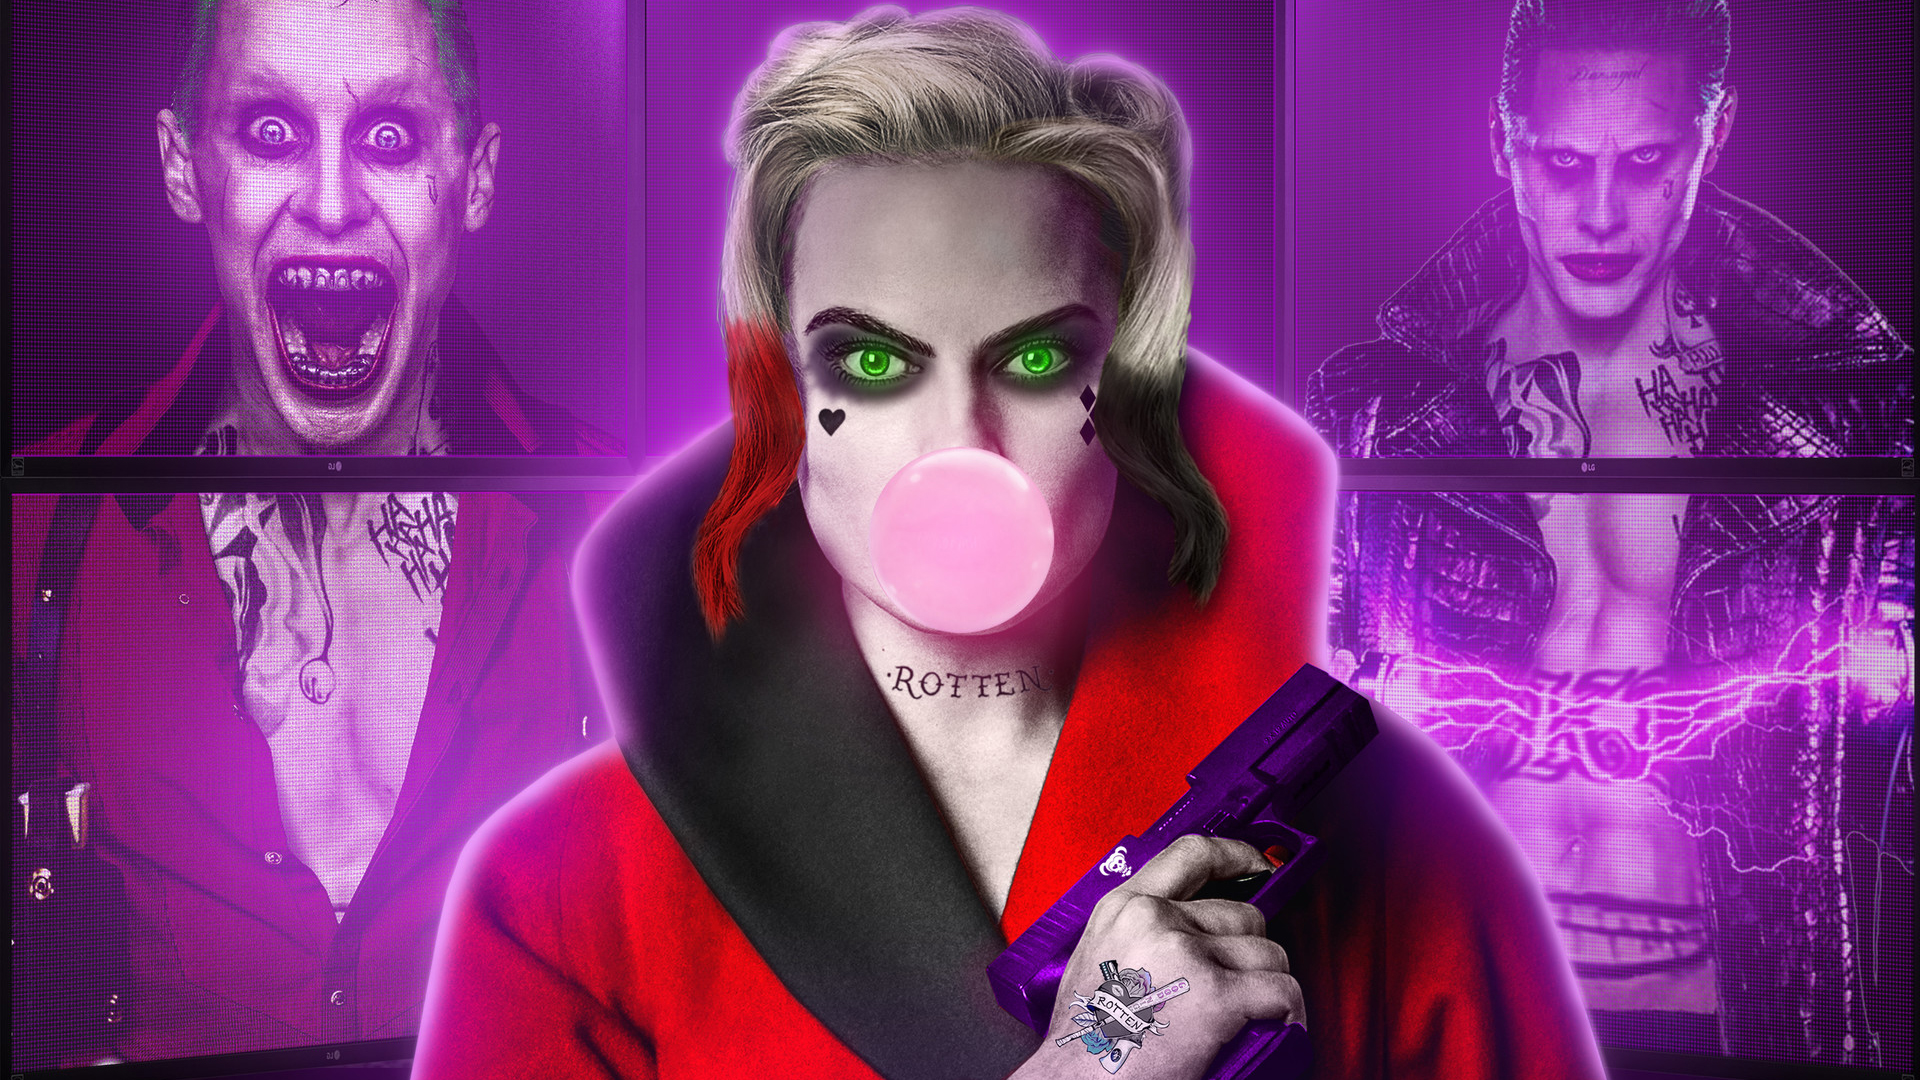 Harley Quinn Joker Wallpapers | HD